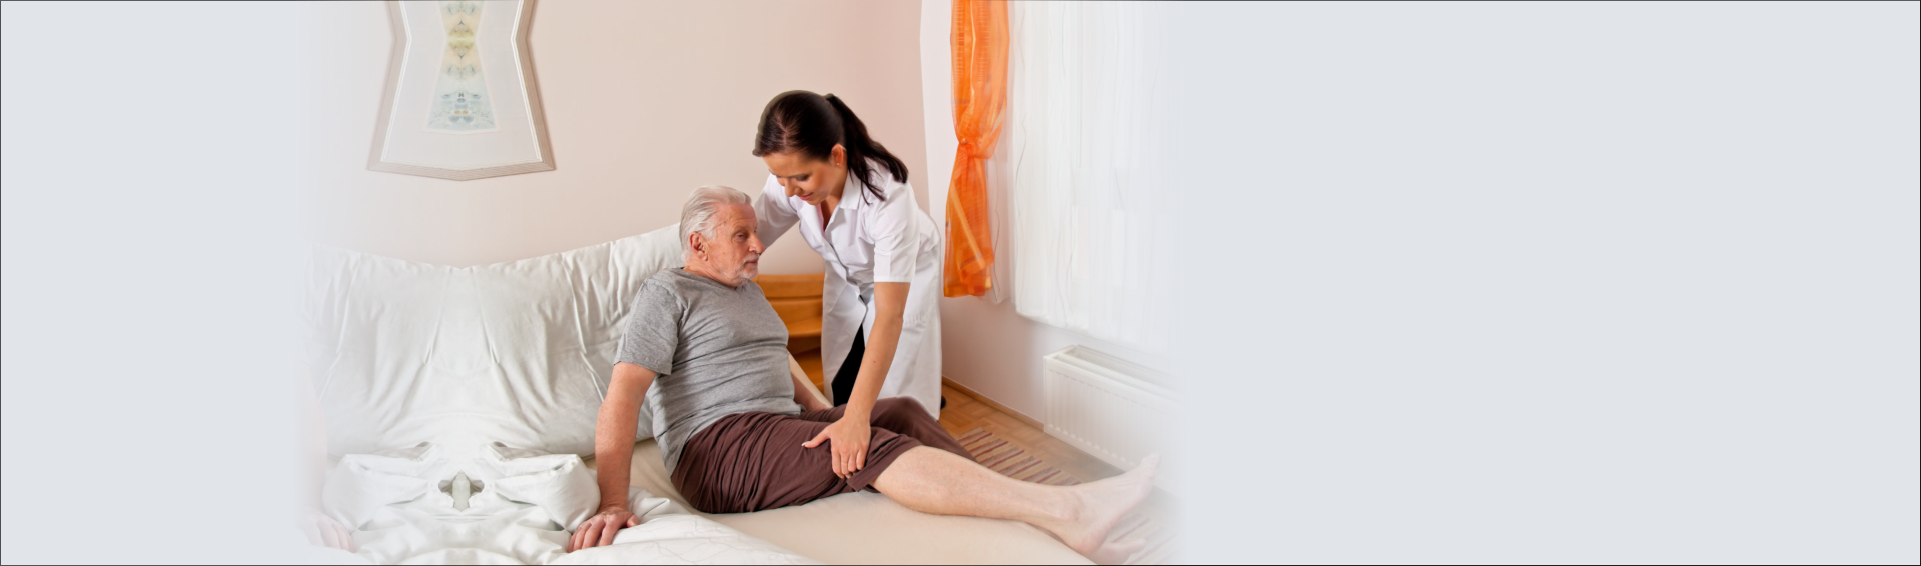 caregiver helping an elderly man from bed